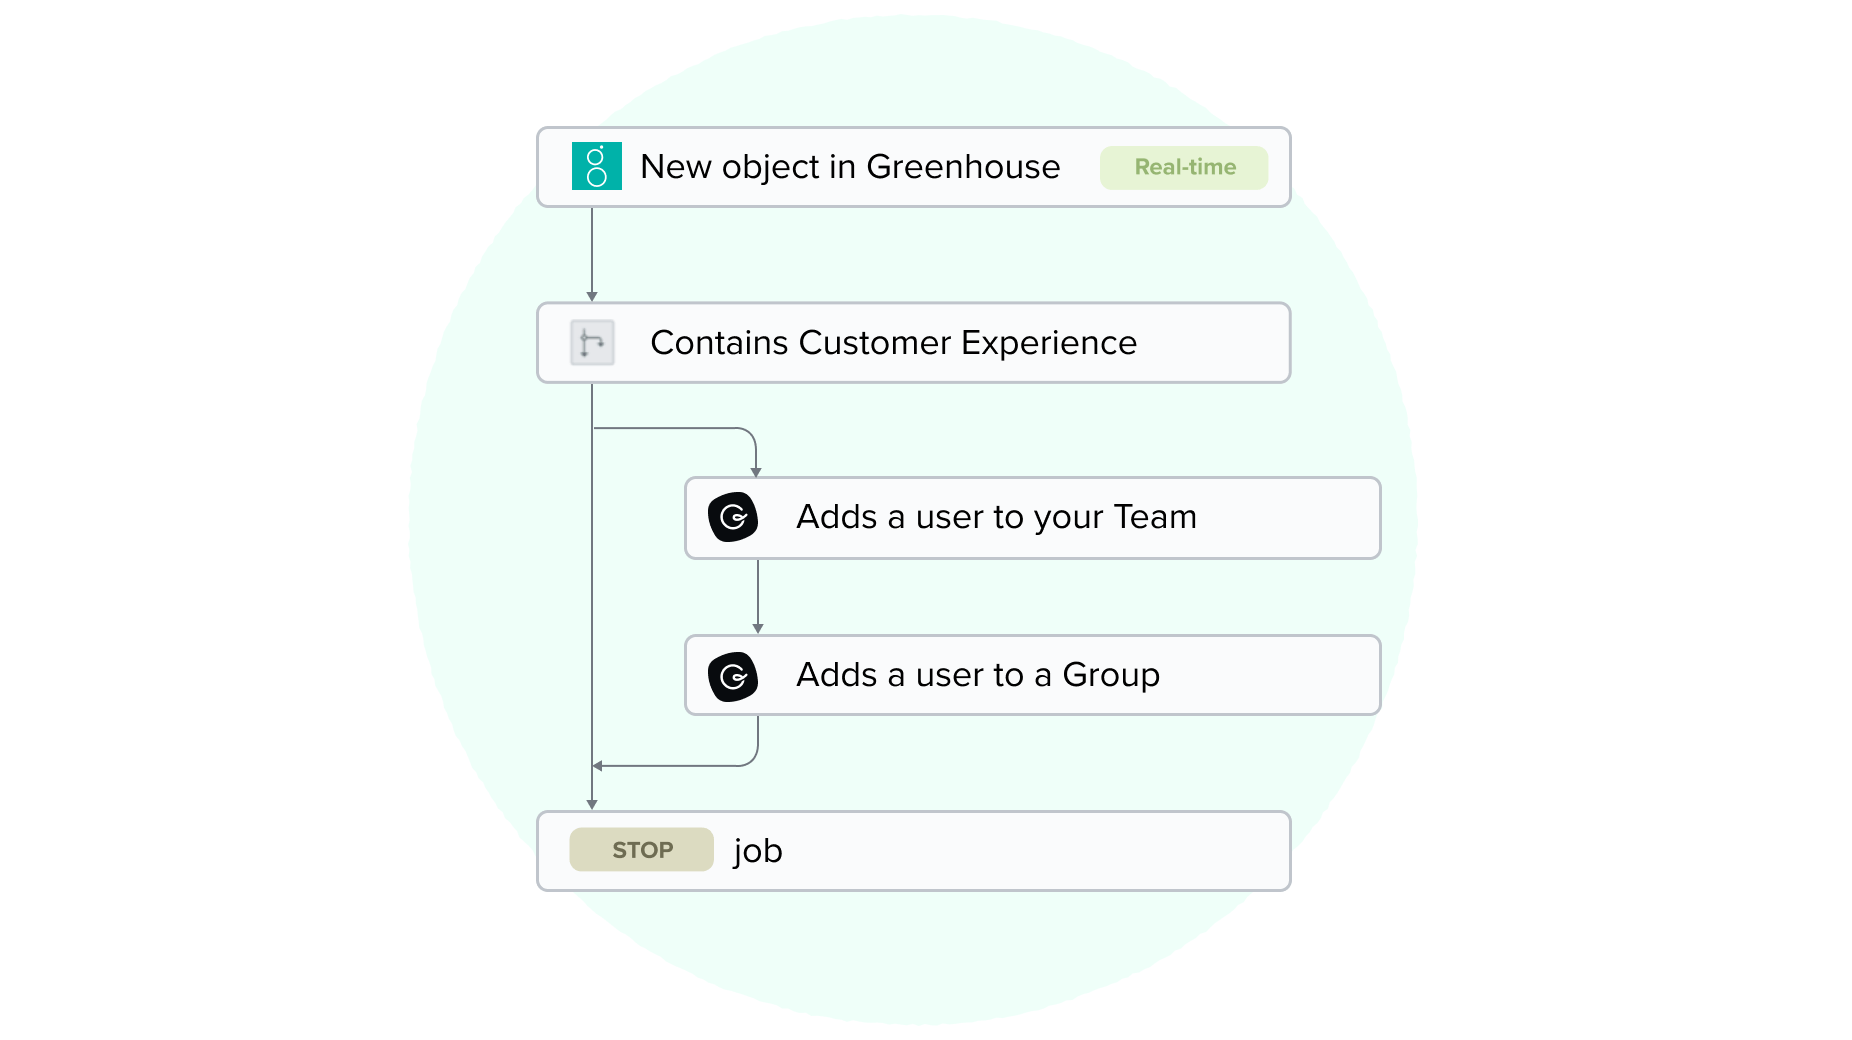 An example breakdown of what it looks like to connect an app like Greenhouse with Guru using the Workato user interface